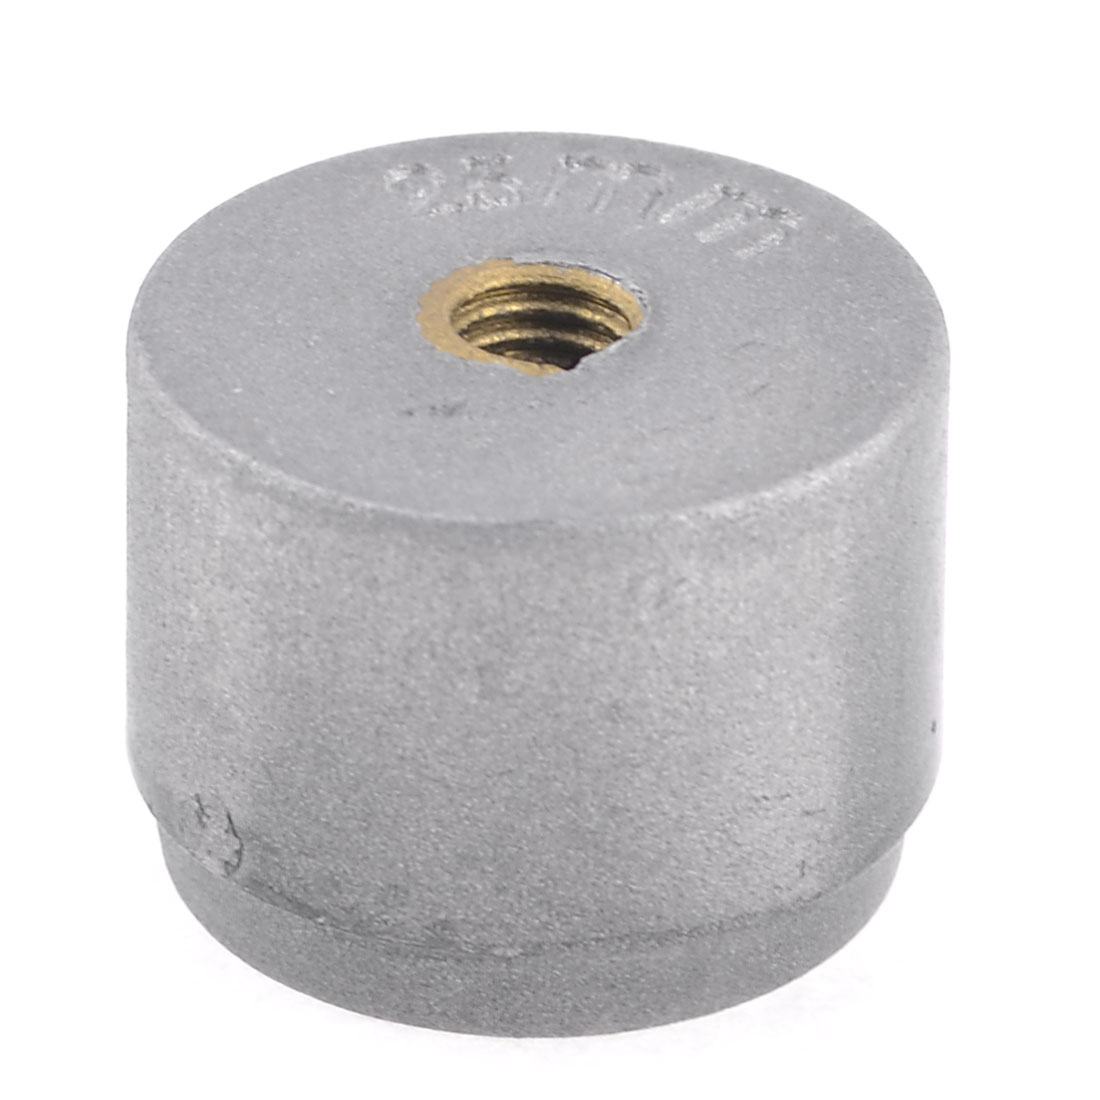 Welding Material Round 25mm Inner Diameter Die Head Welder